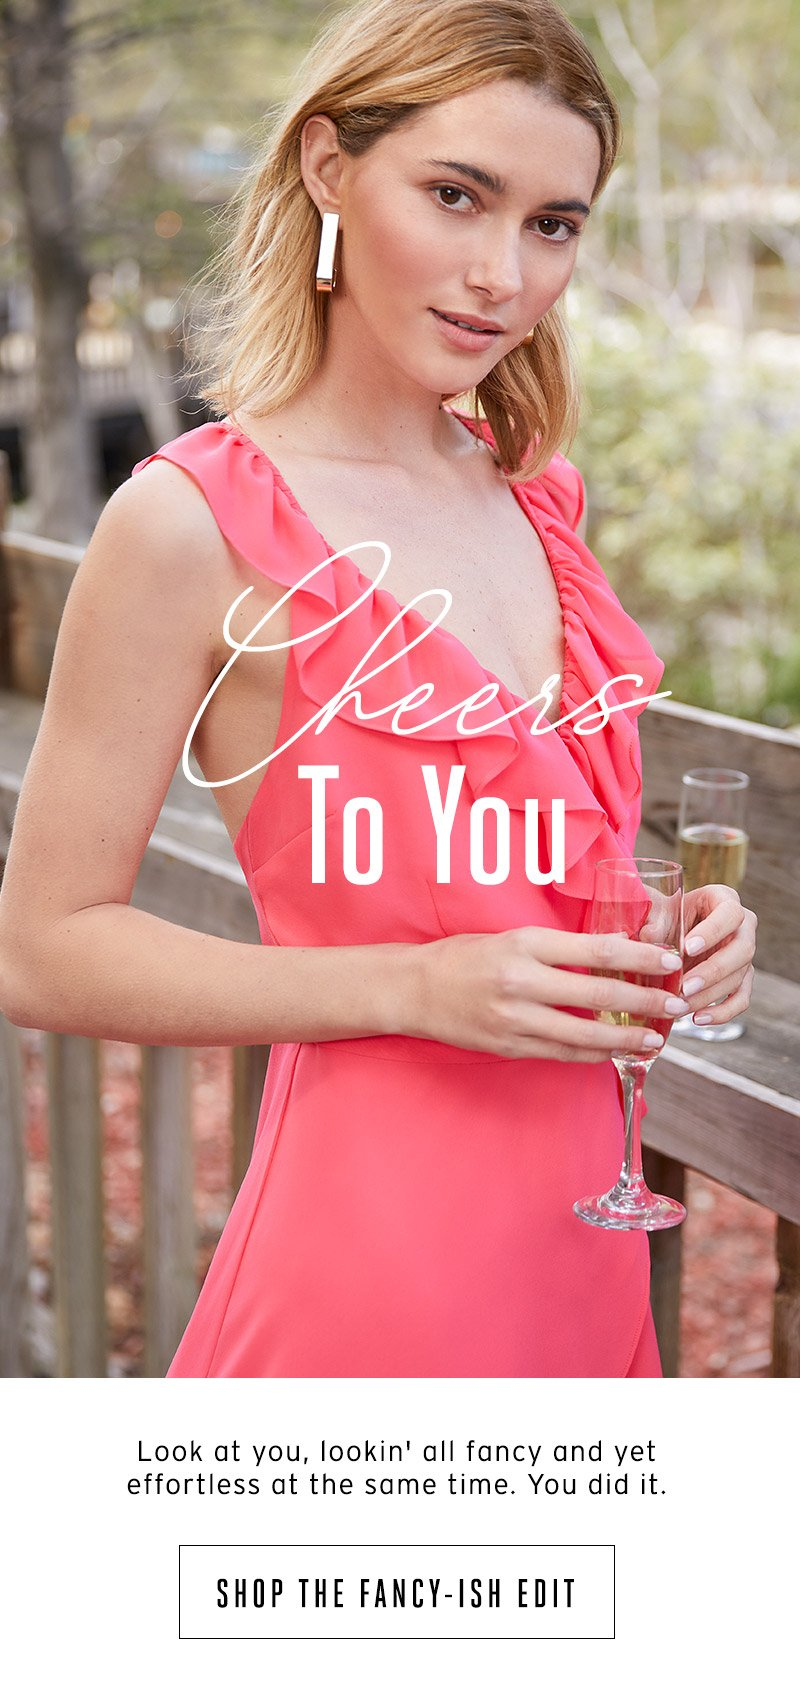 Cheers to you. Shop the fancy-ish edit.